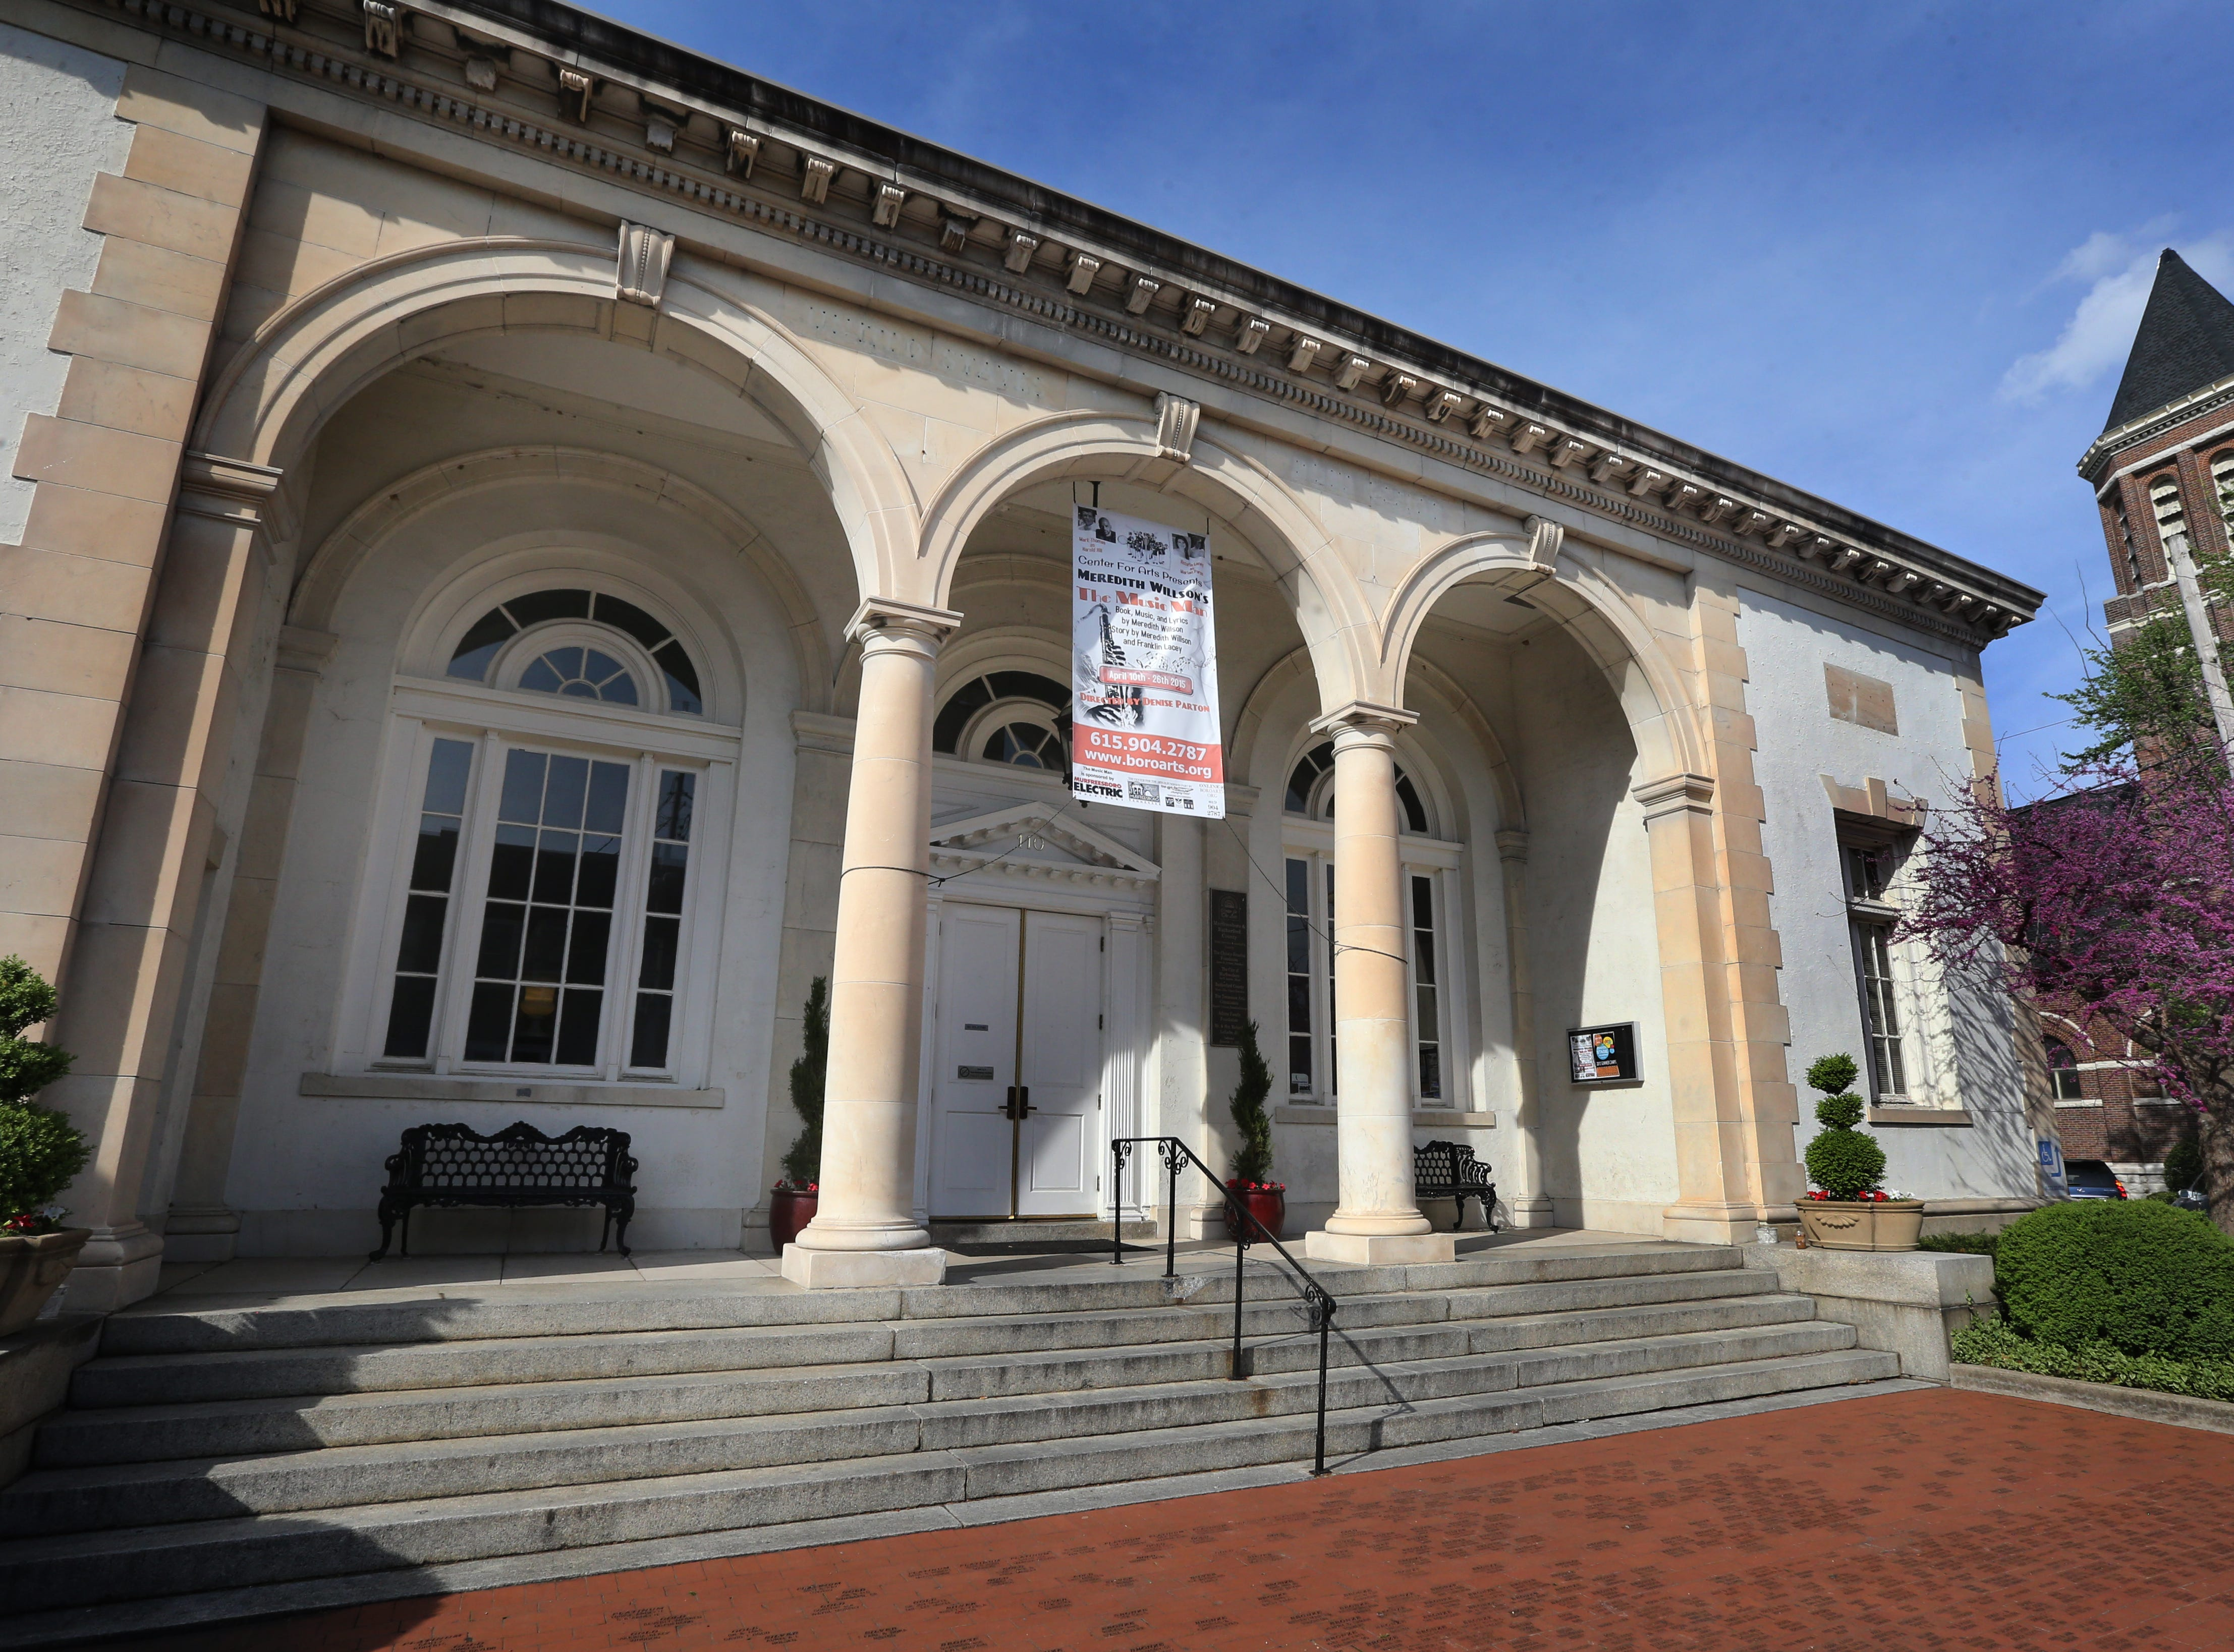 The Center for the Arts includes a stage for theatrical and musical productions and gallery space for art exhibits.